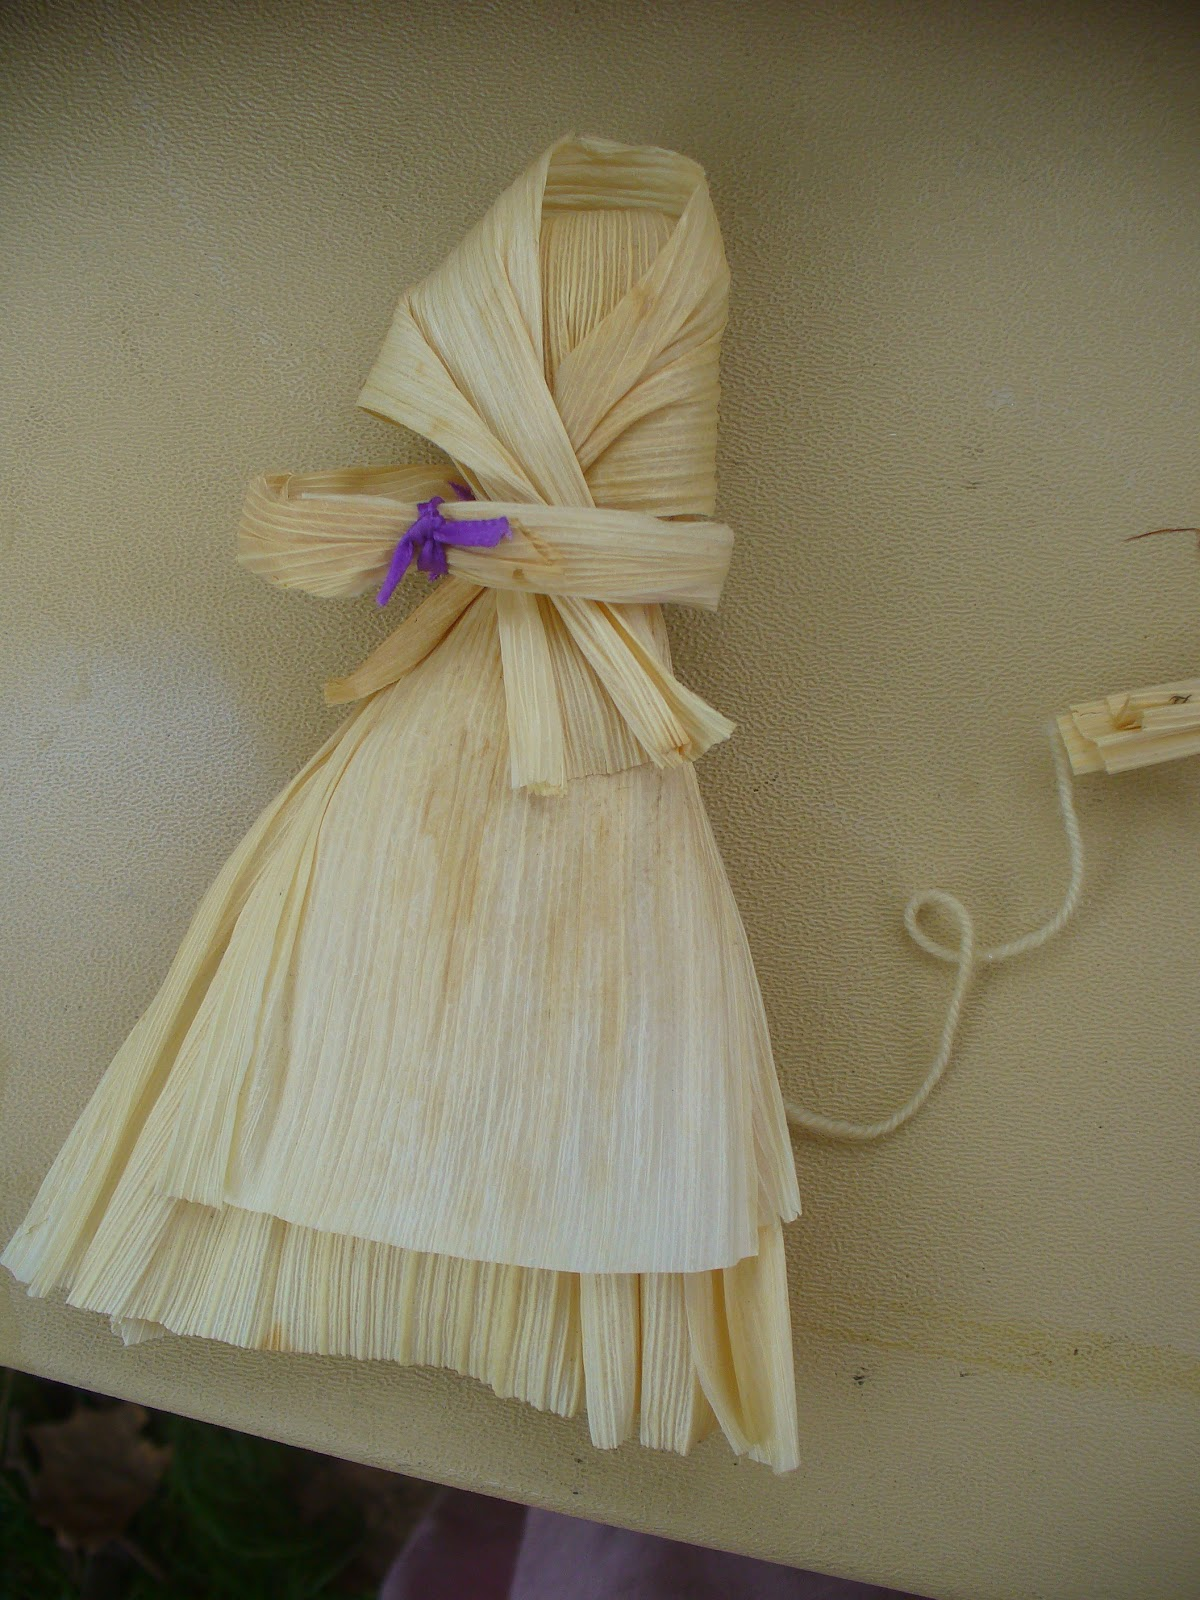 World Turn'd Upside Down: How to Make Corn Husk Dolls